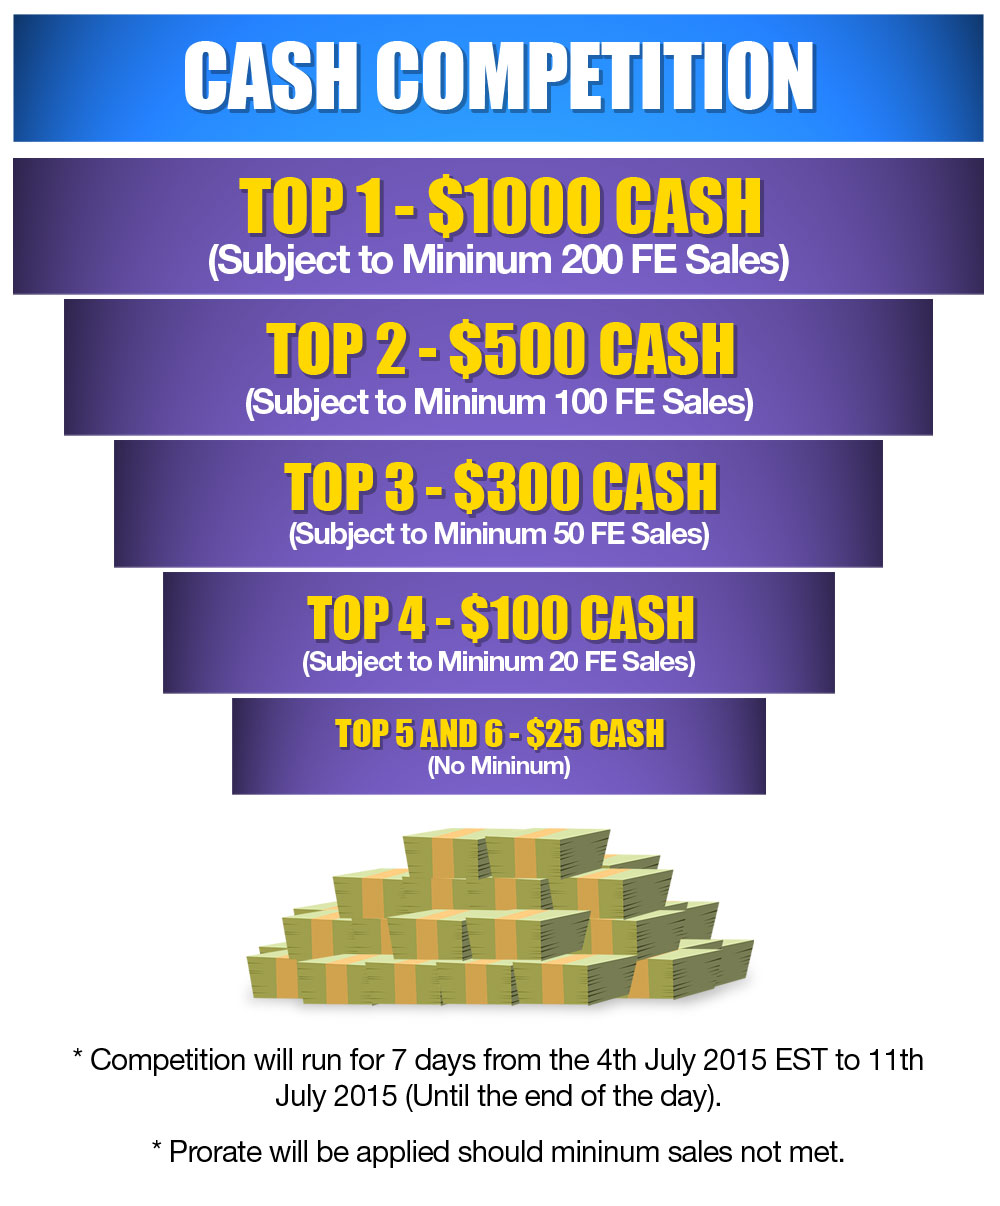 AffiliateInformationCashCompetition